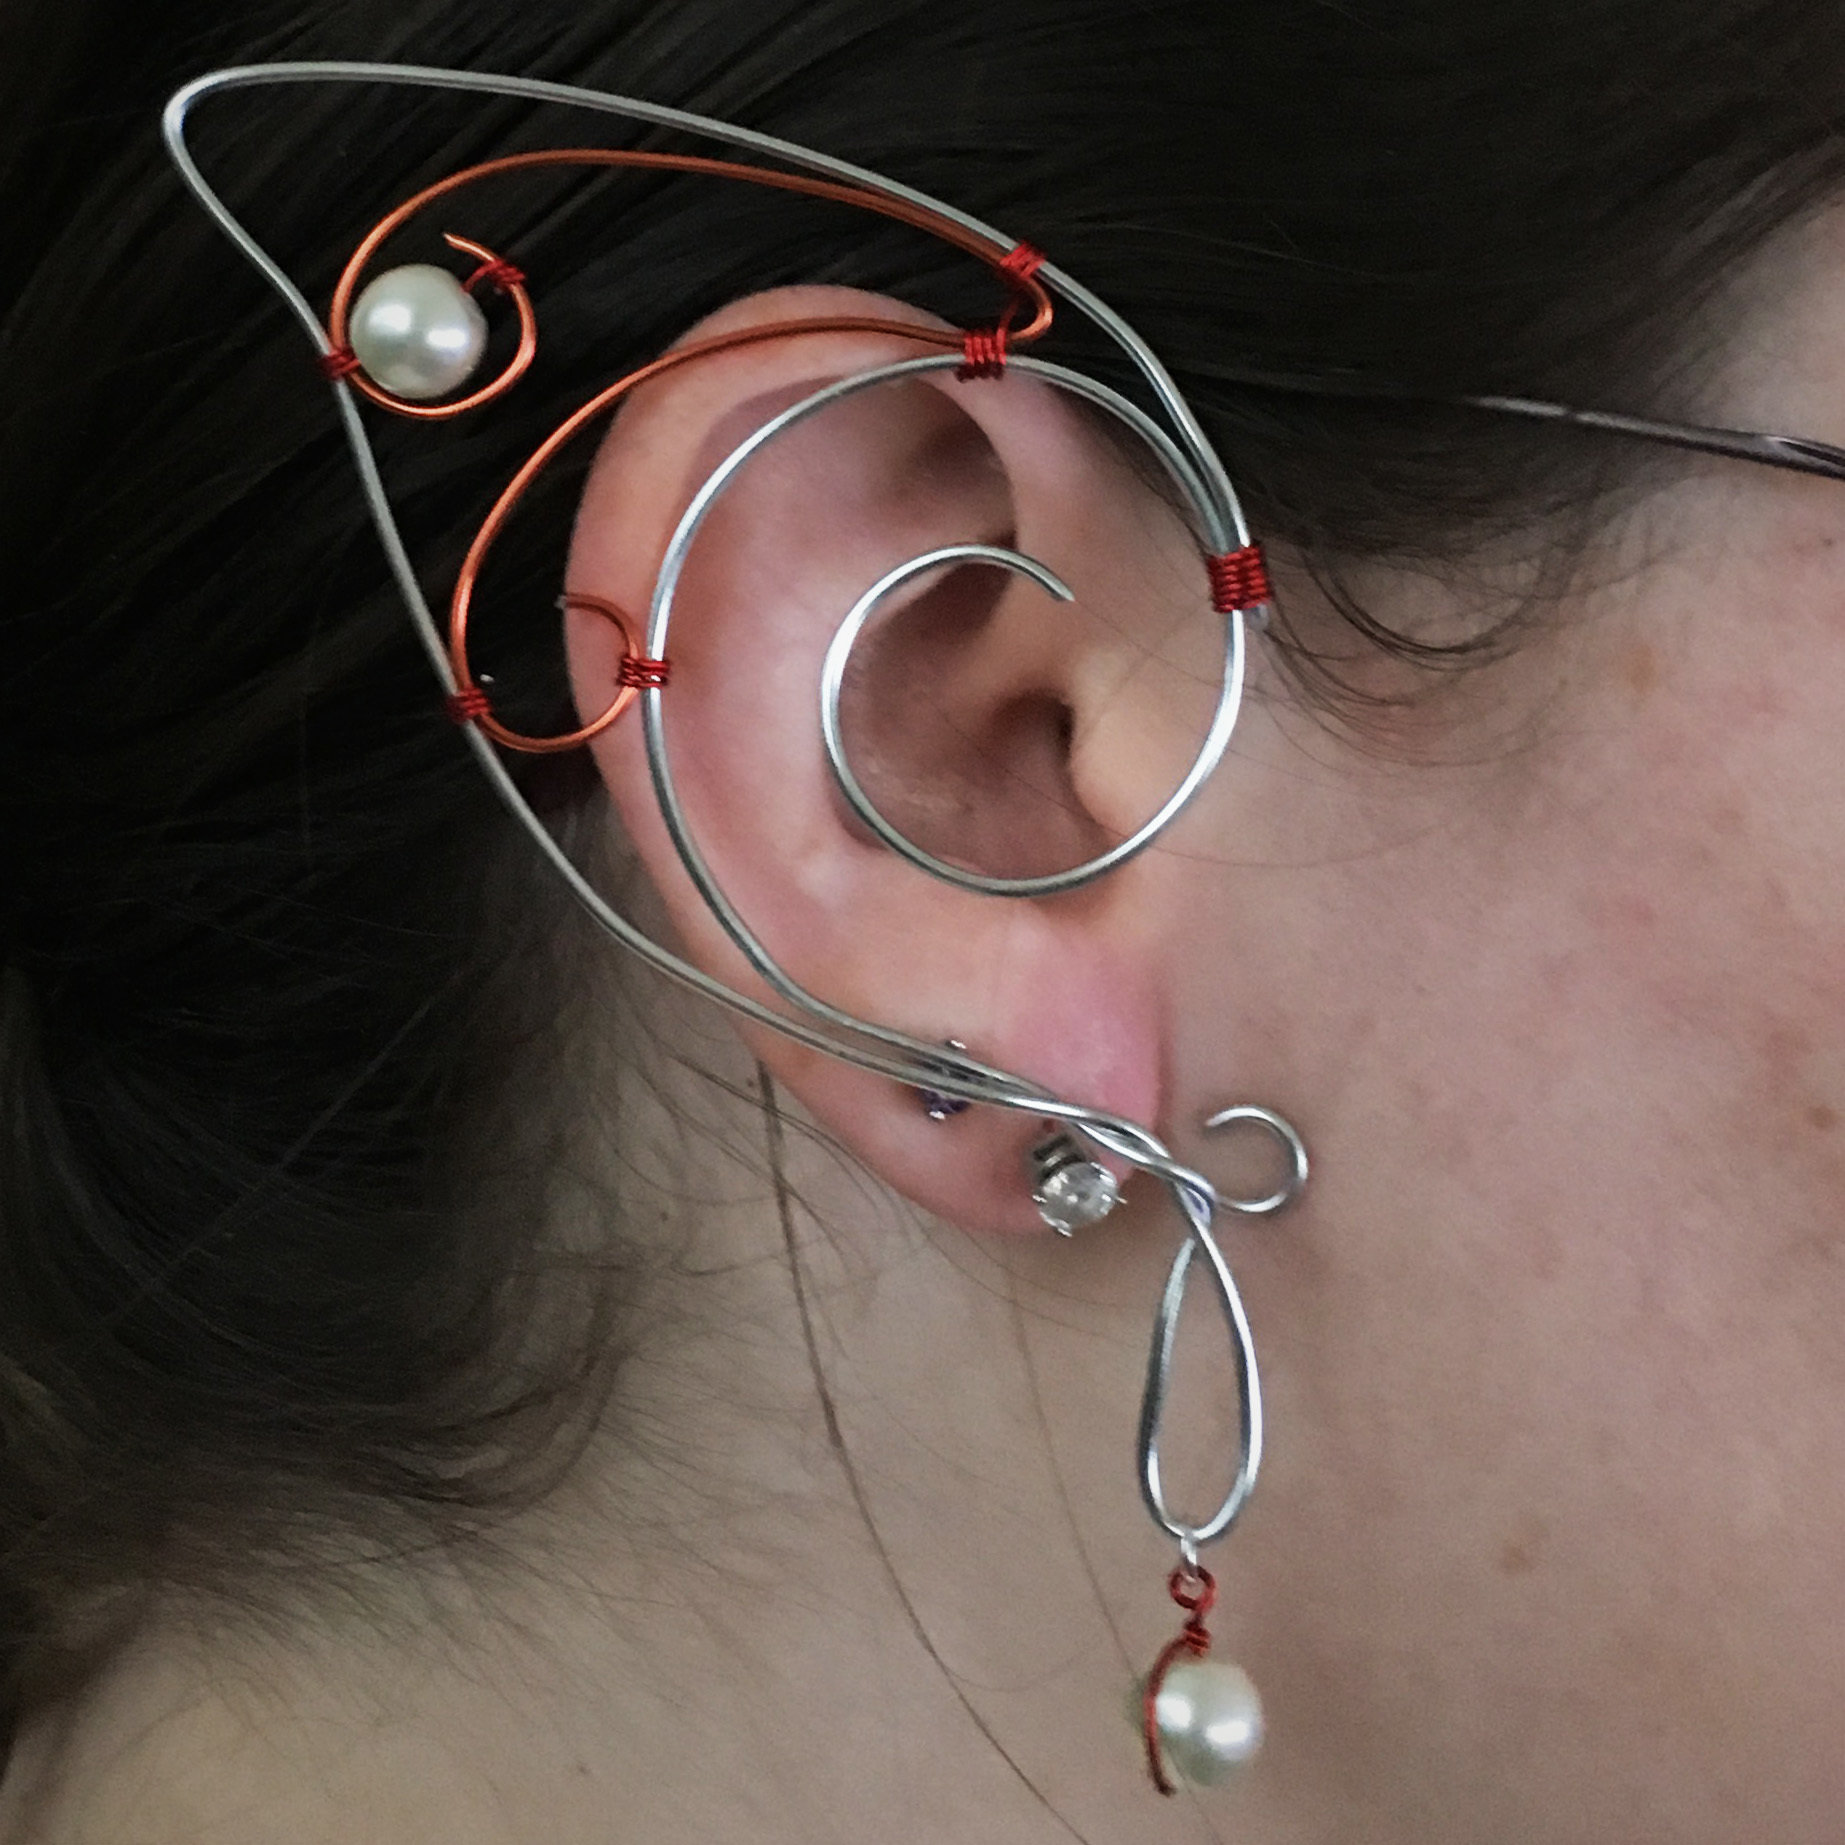 Elf Ear Cuff - Silver and orange with beads EC003